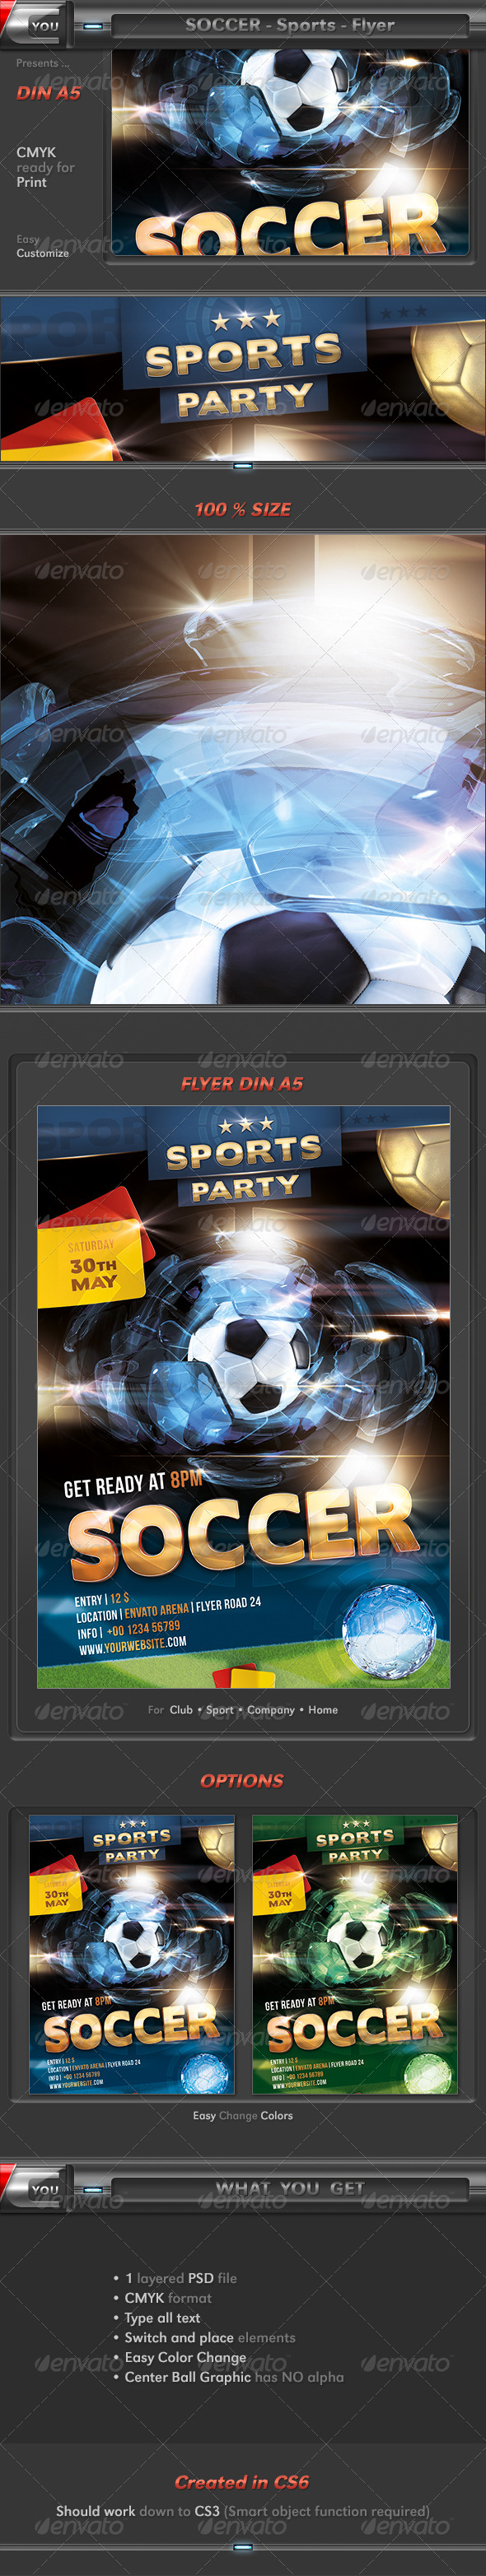 Soccer Sports Event Party Flyer - Sports Events